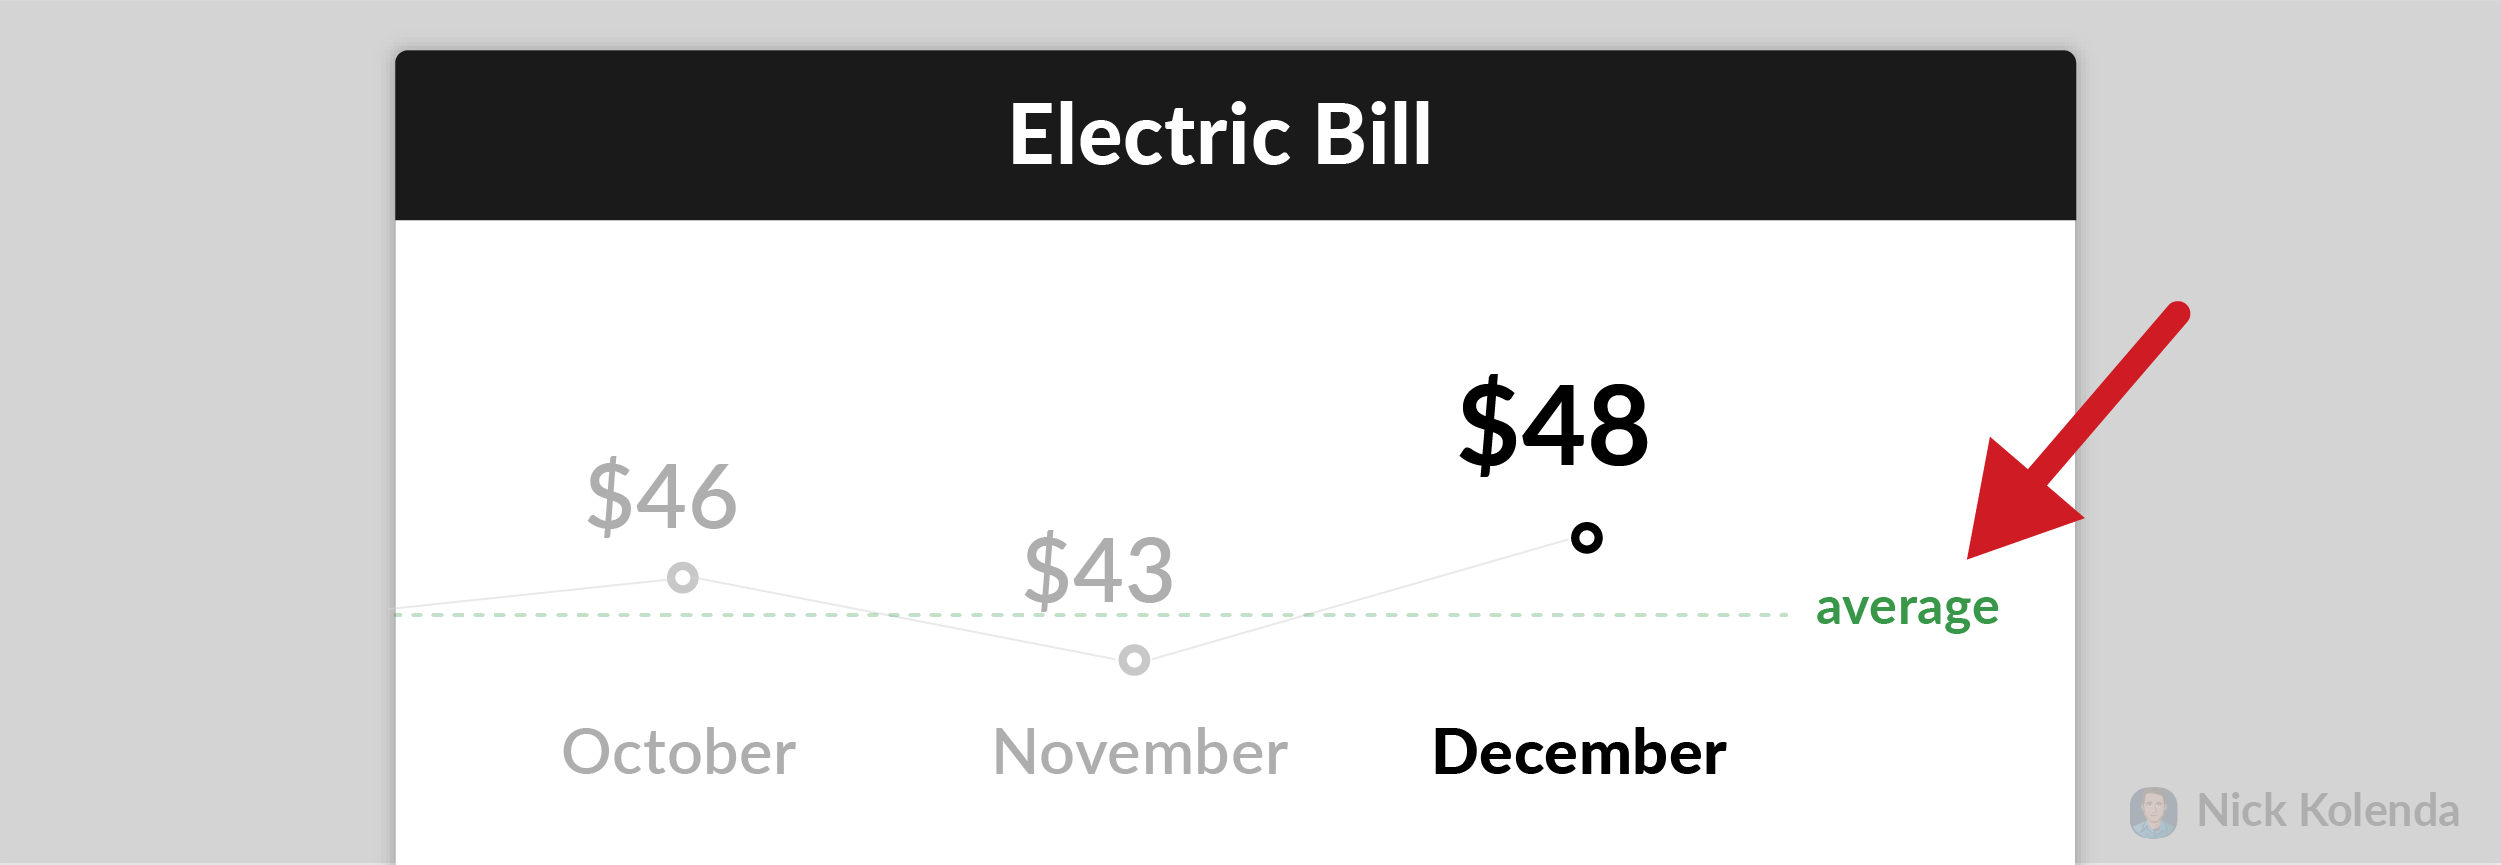 Electric bill with average amount that customers pay